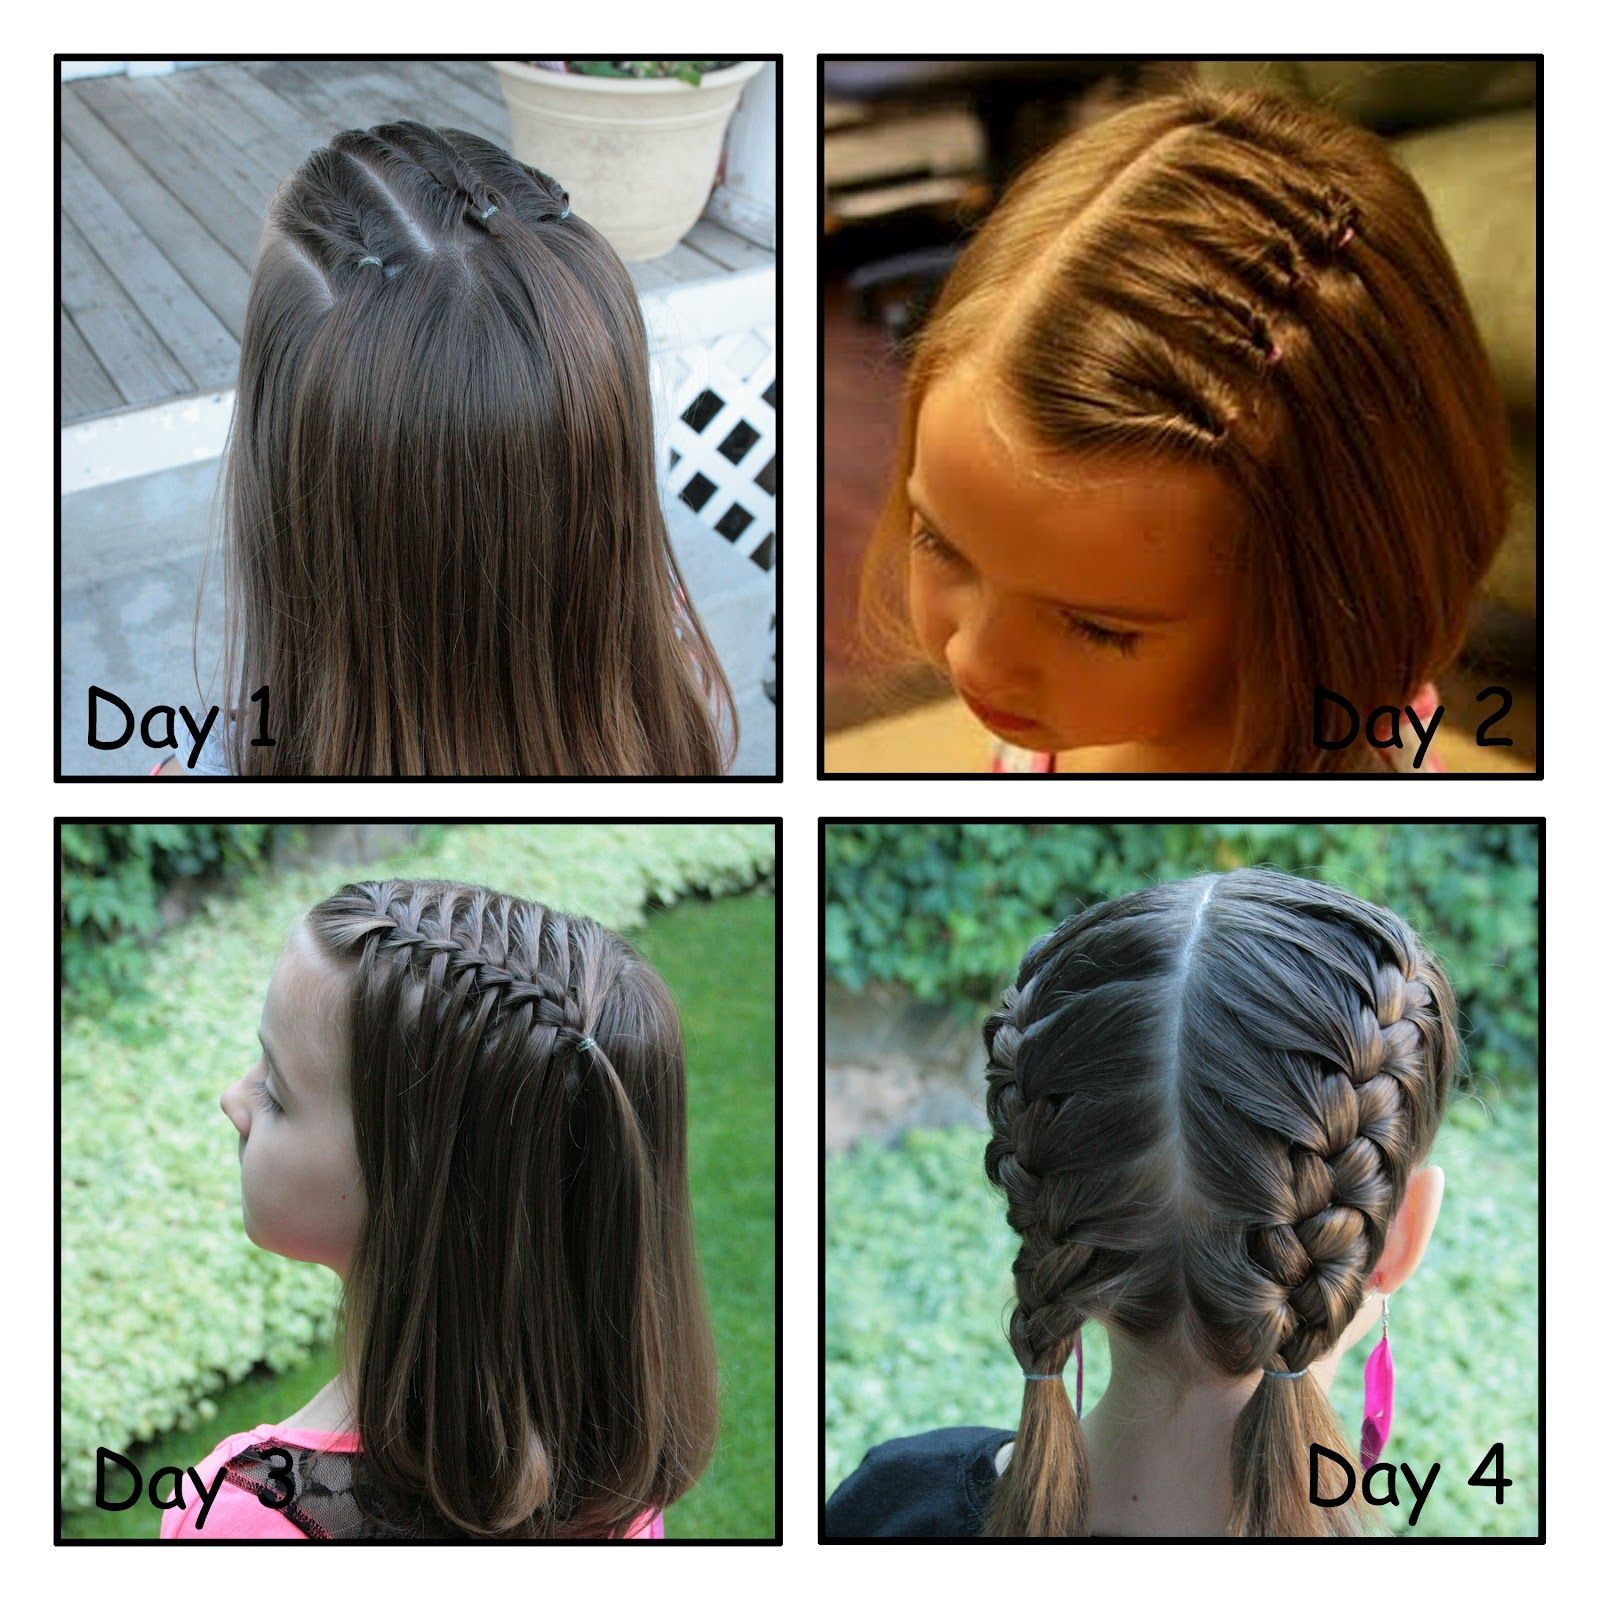 Girly hair styles hair pinterest hair conditioning treatment